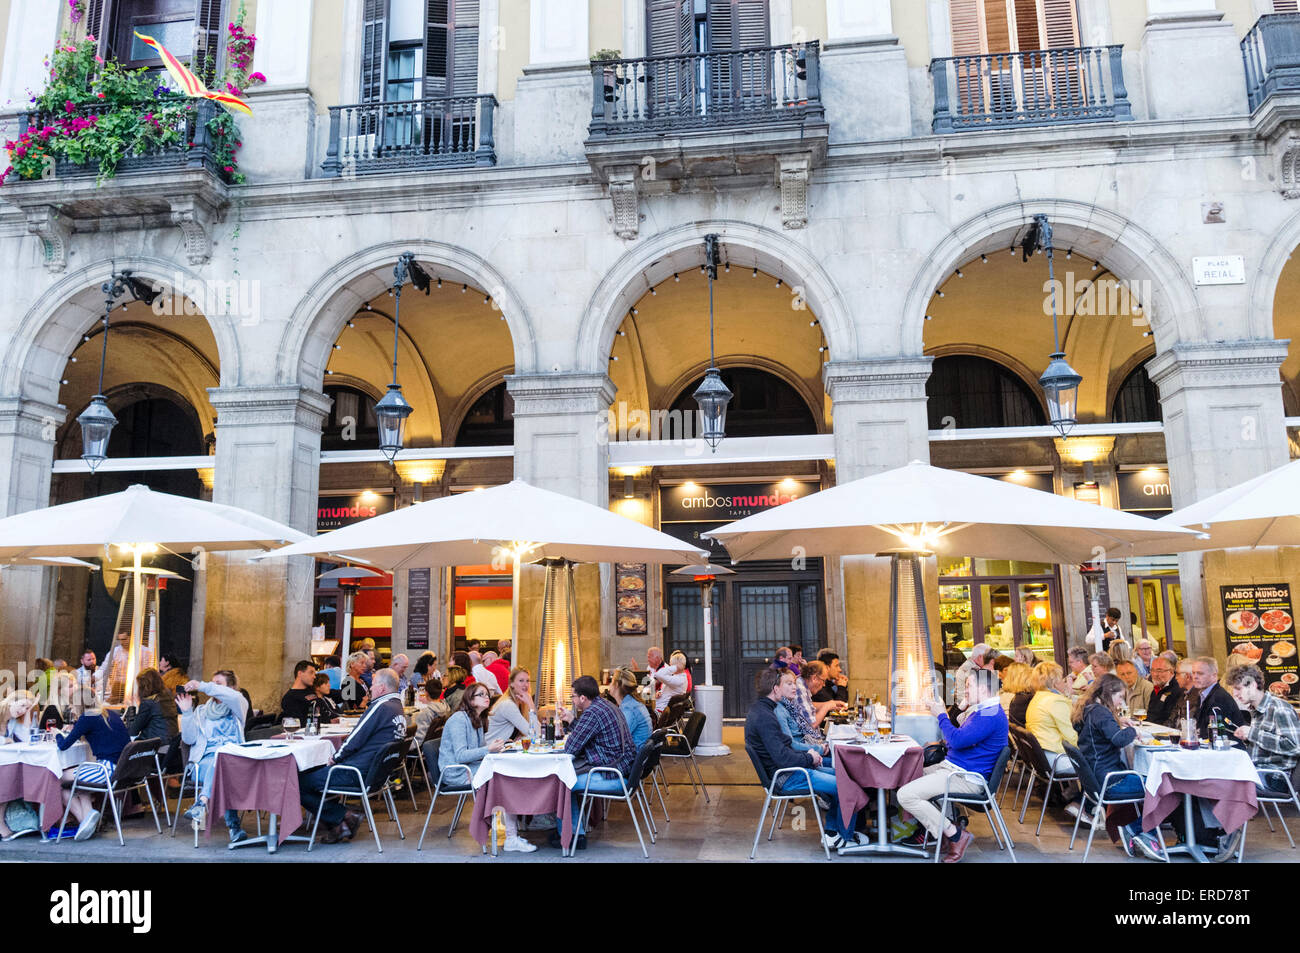 barcelona restaurant stockfotos barcelona restaurant bilder alamy. Black Bedroom Furniture Sets. Home Design Ideas